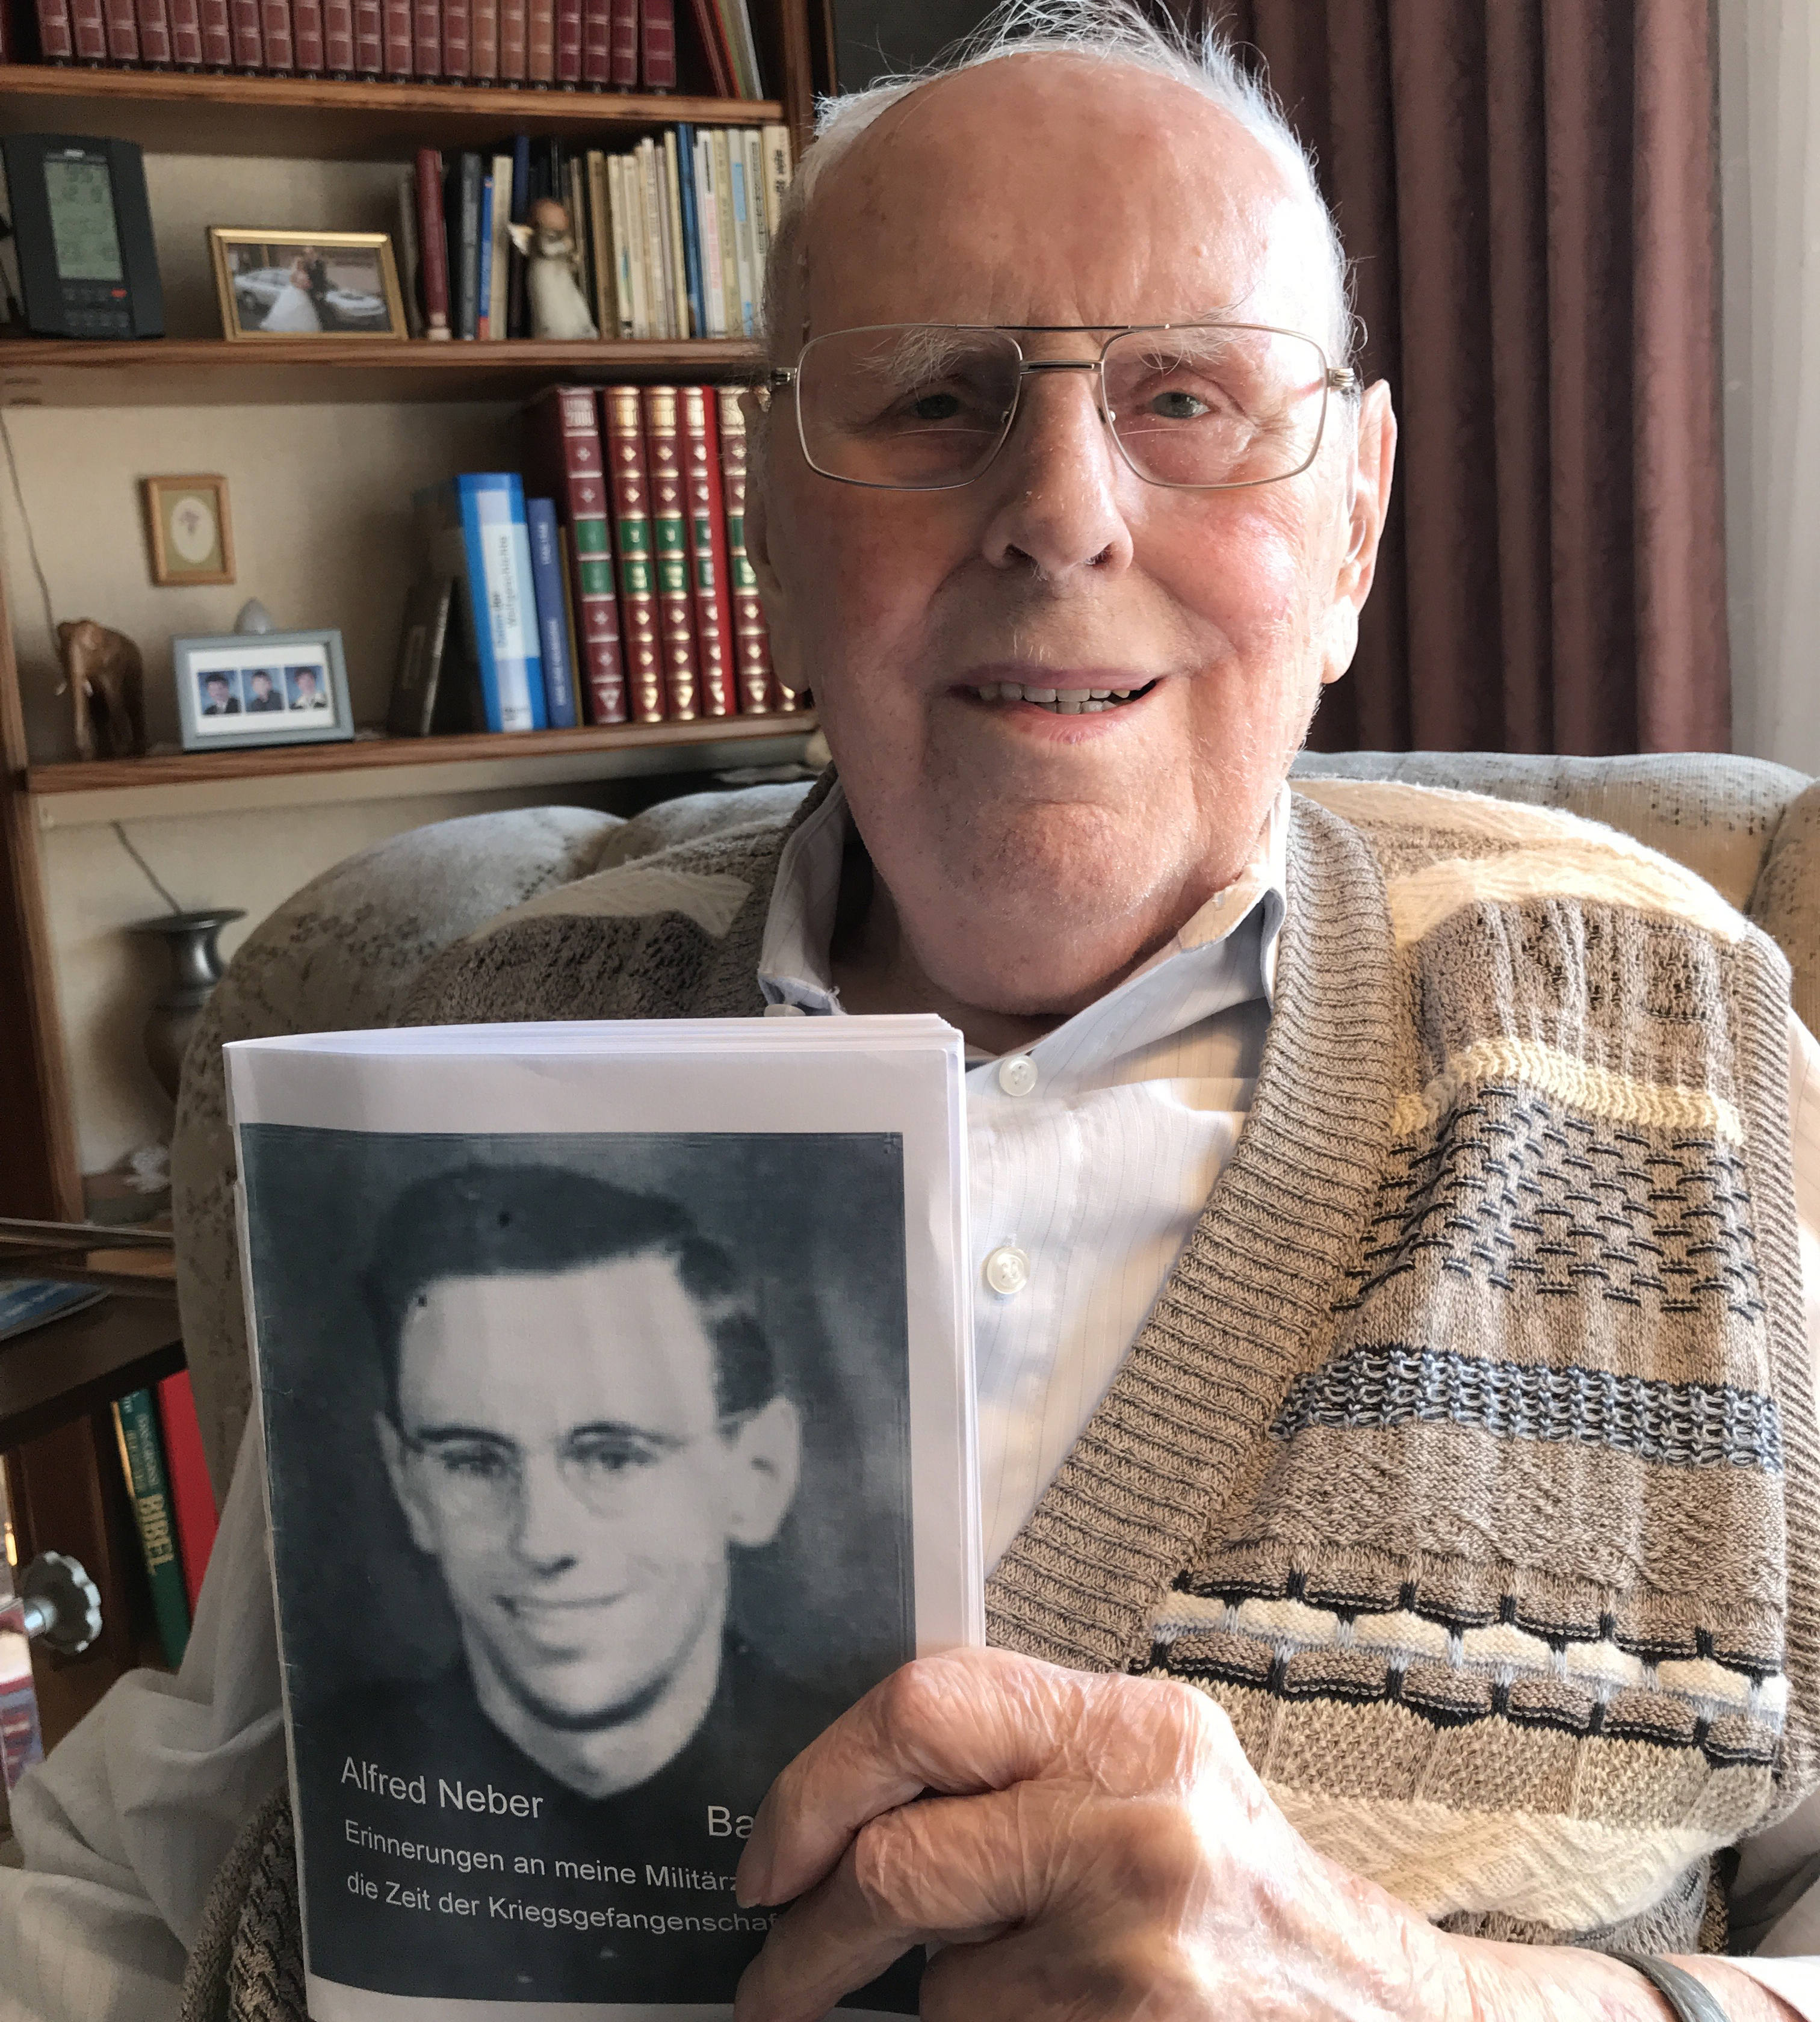 Alfred Neber, 95, who lives in Germany near Heidelberg, holds a photo of himself taken when he was about 20, around the time he was sent to work in Minnesota as a POW.